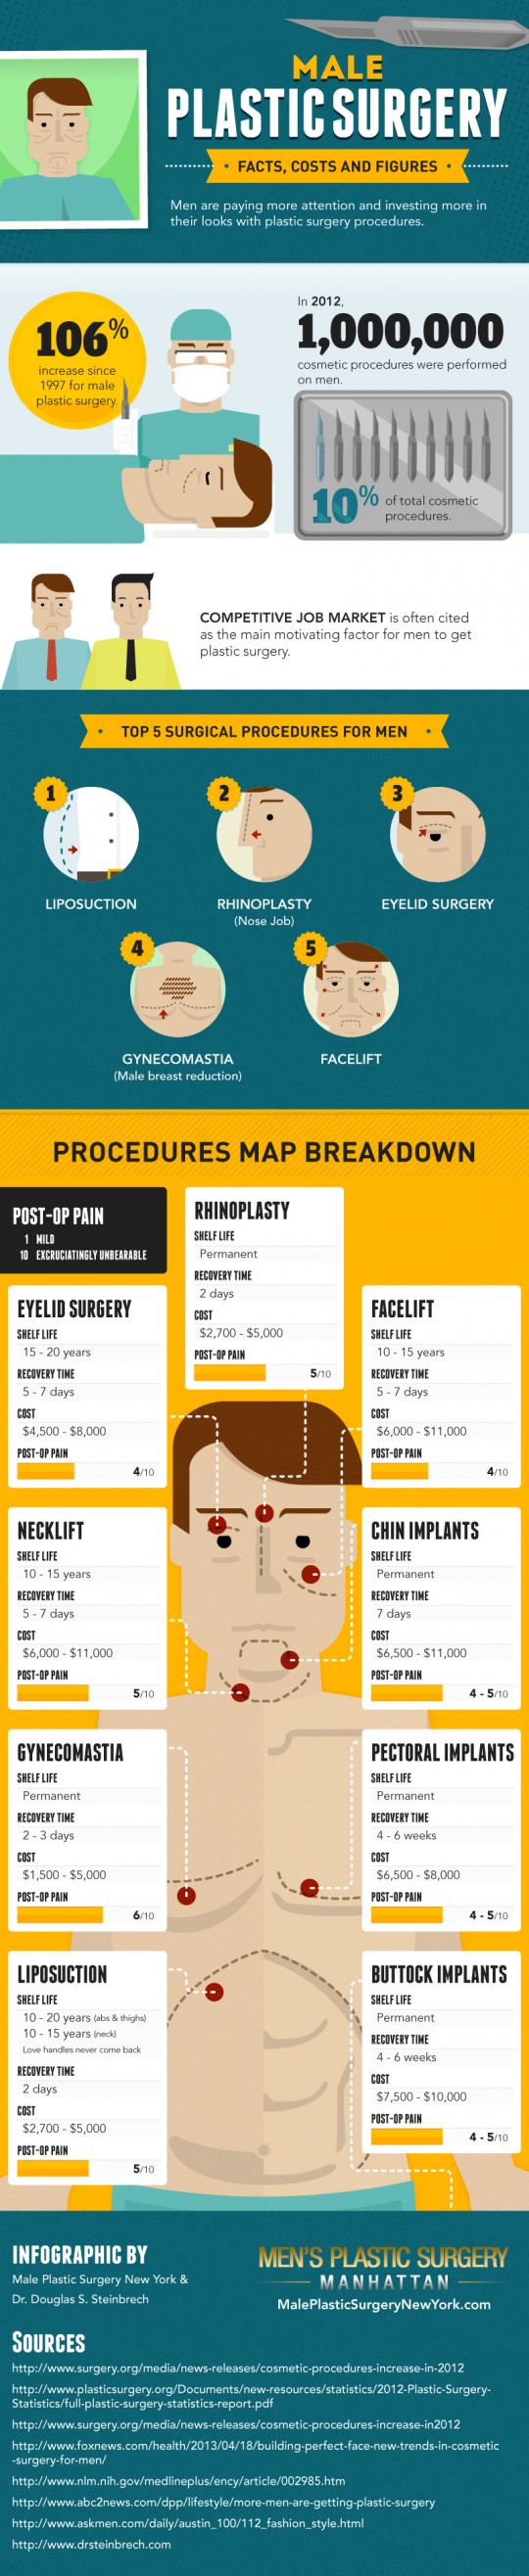 Male Plastic Surgery: Facts, Costs and Figures